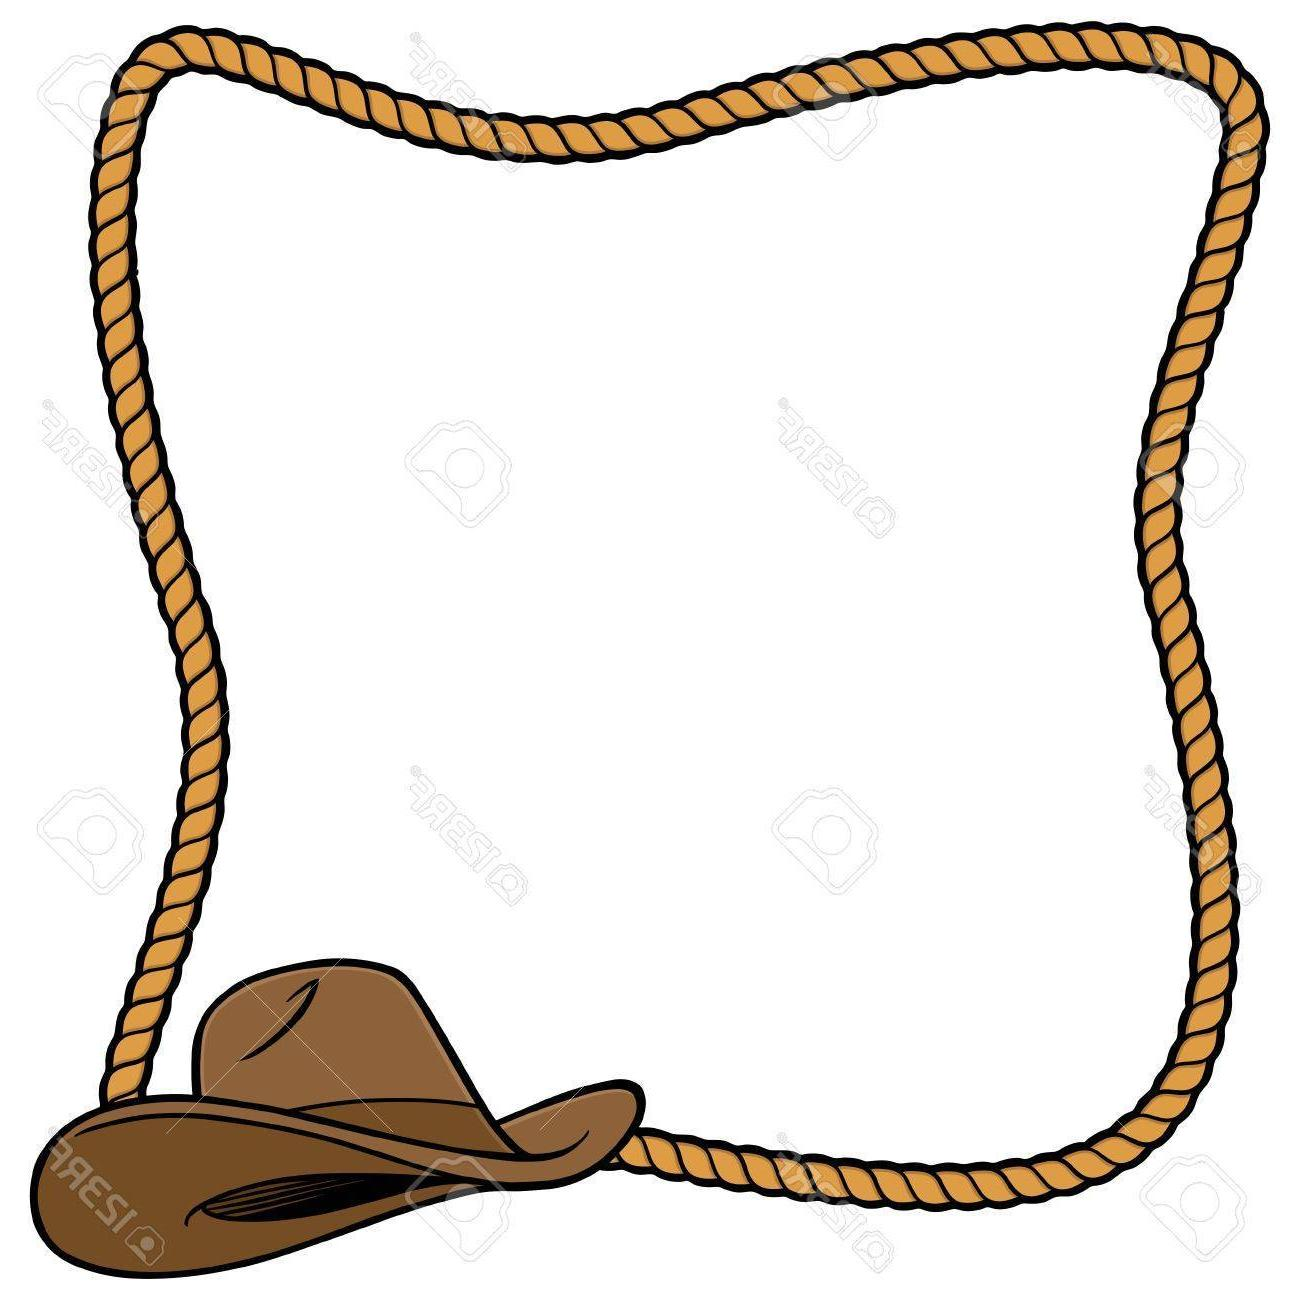 HD Lasso Rope Clip Art Images » Free Vector Art, Images.